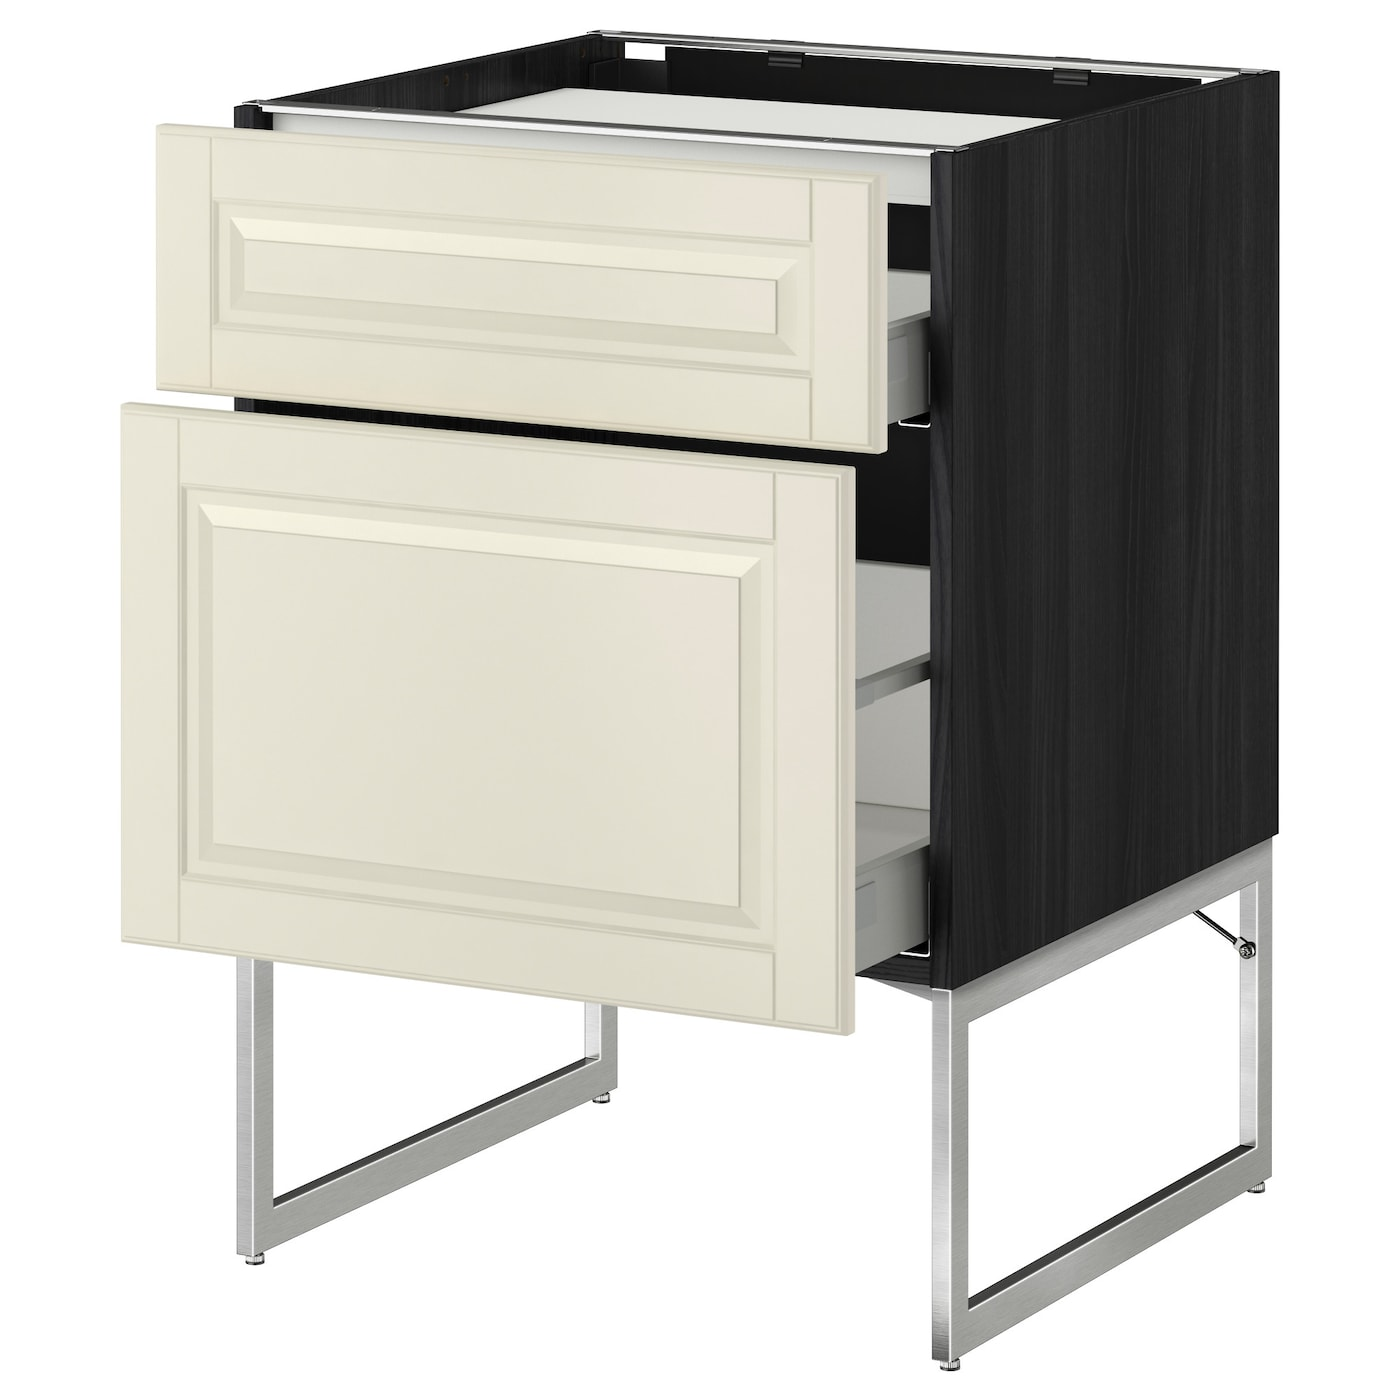 IKEA METOD/MAXIMERA base cab f hob/2 fronts/2 drawers Smooth-running drawers with stop.